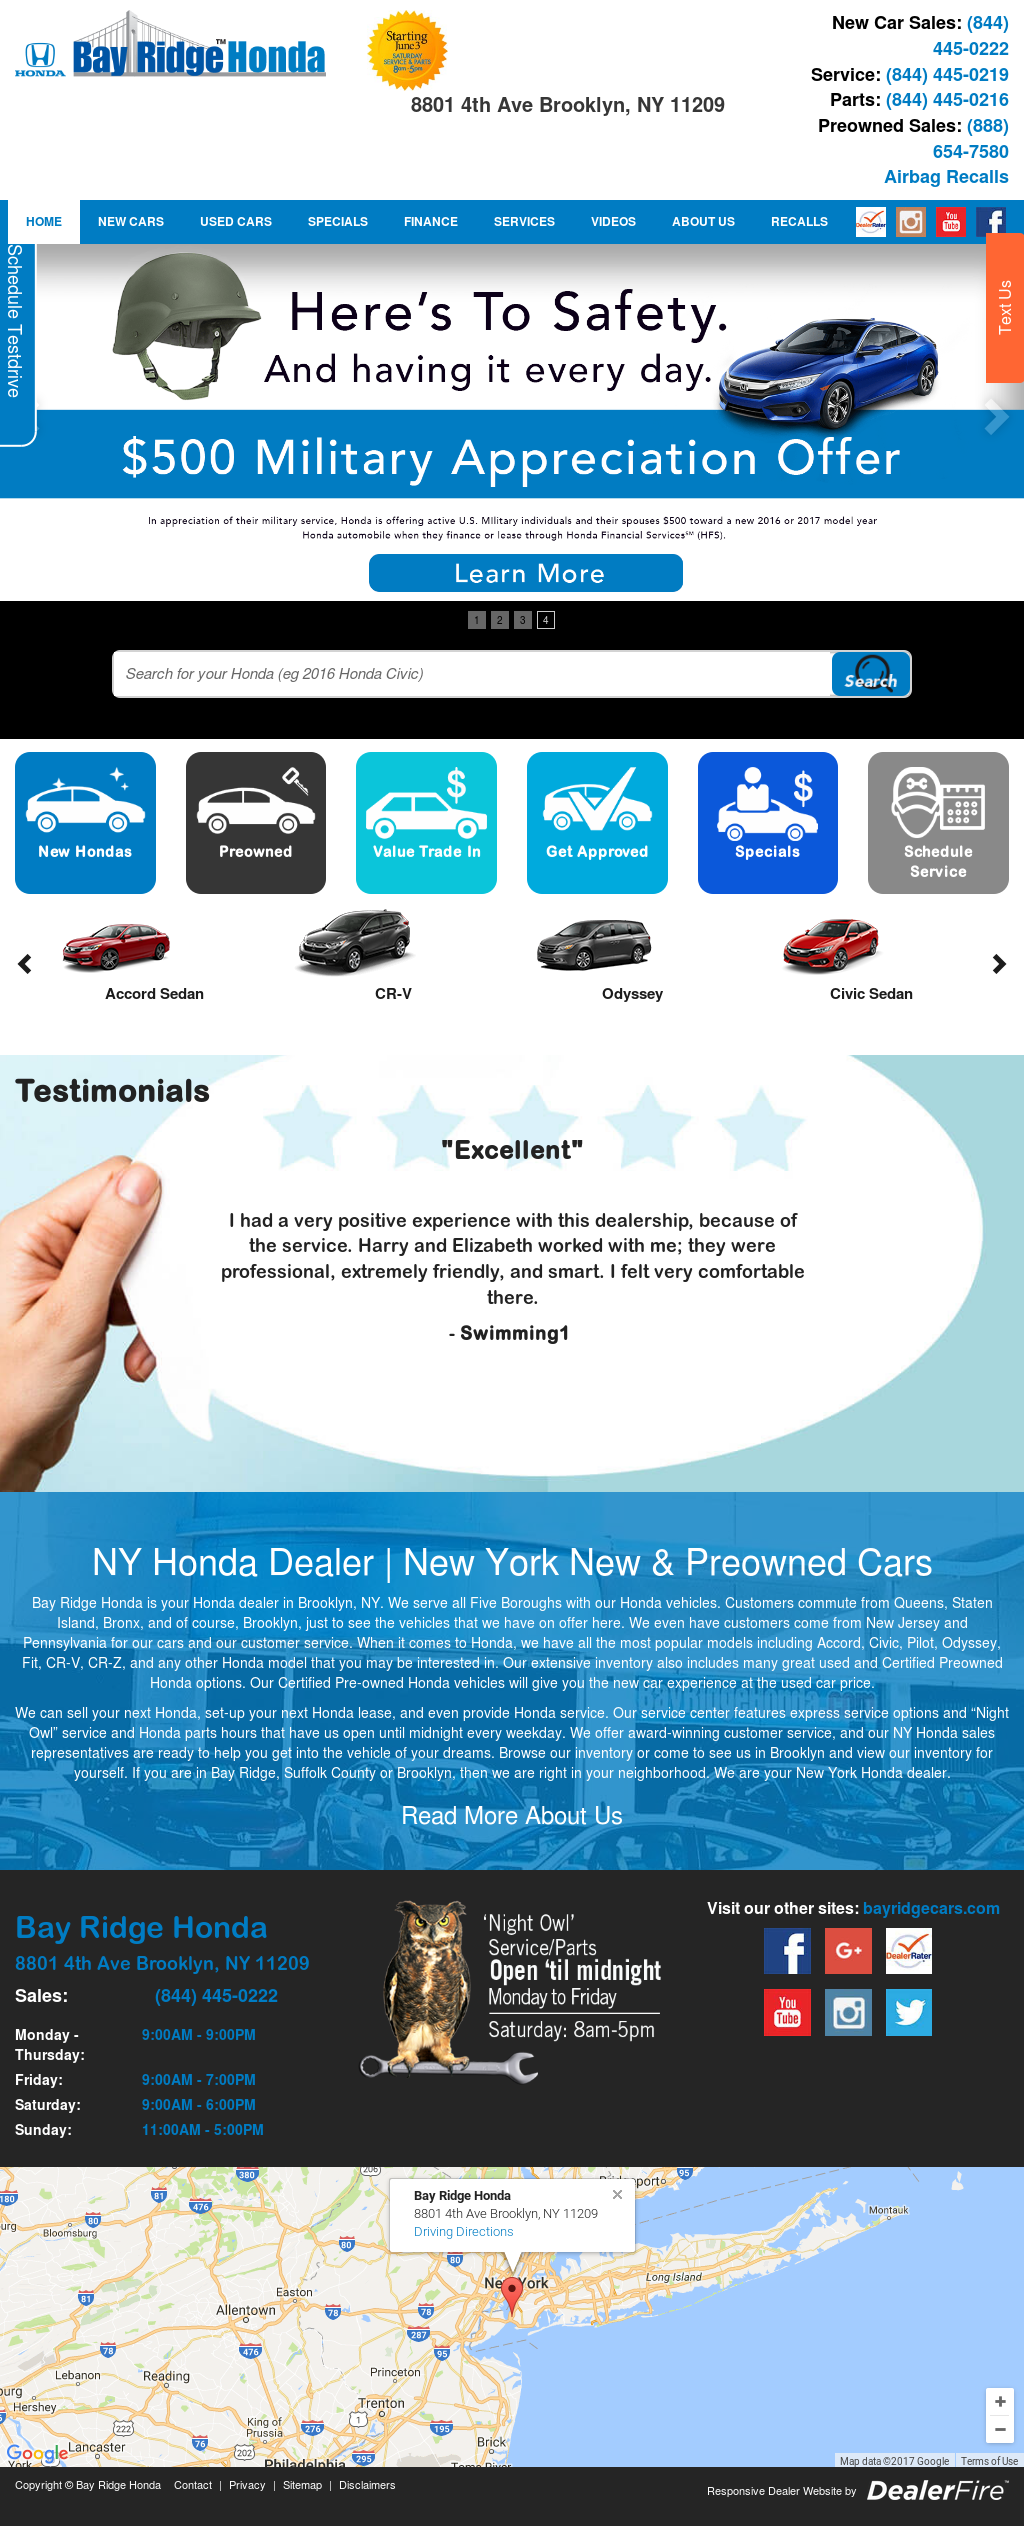 Bay Ridge Honda Website History